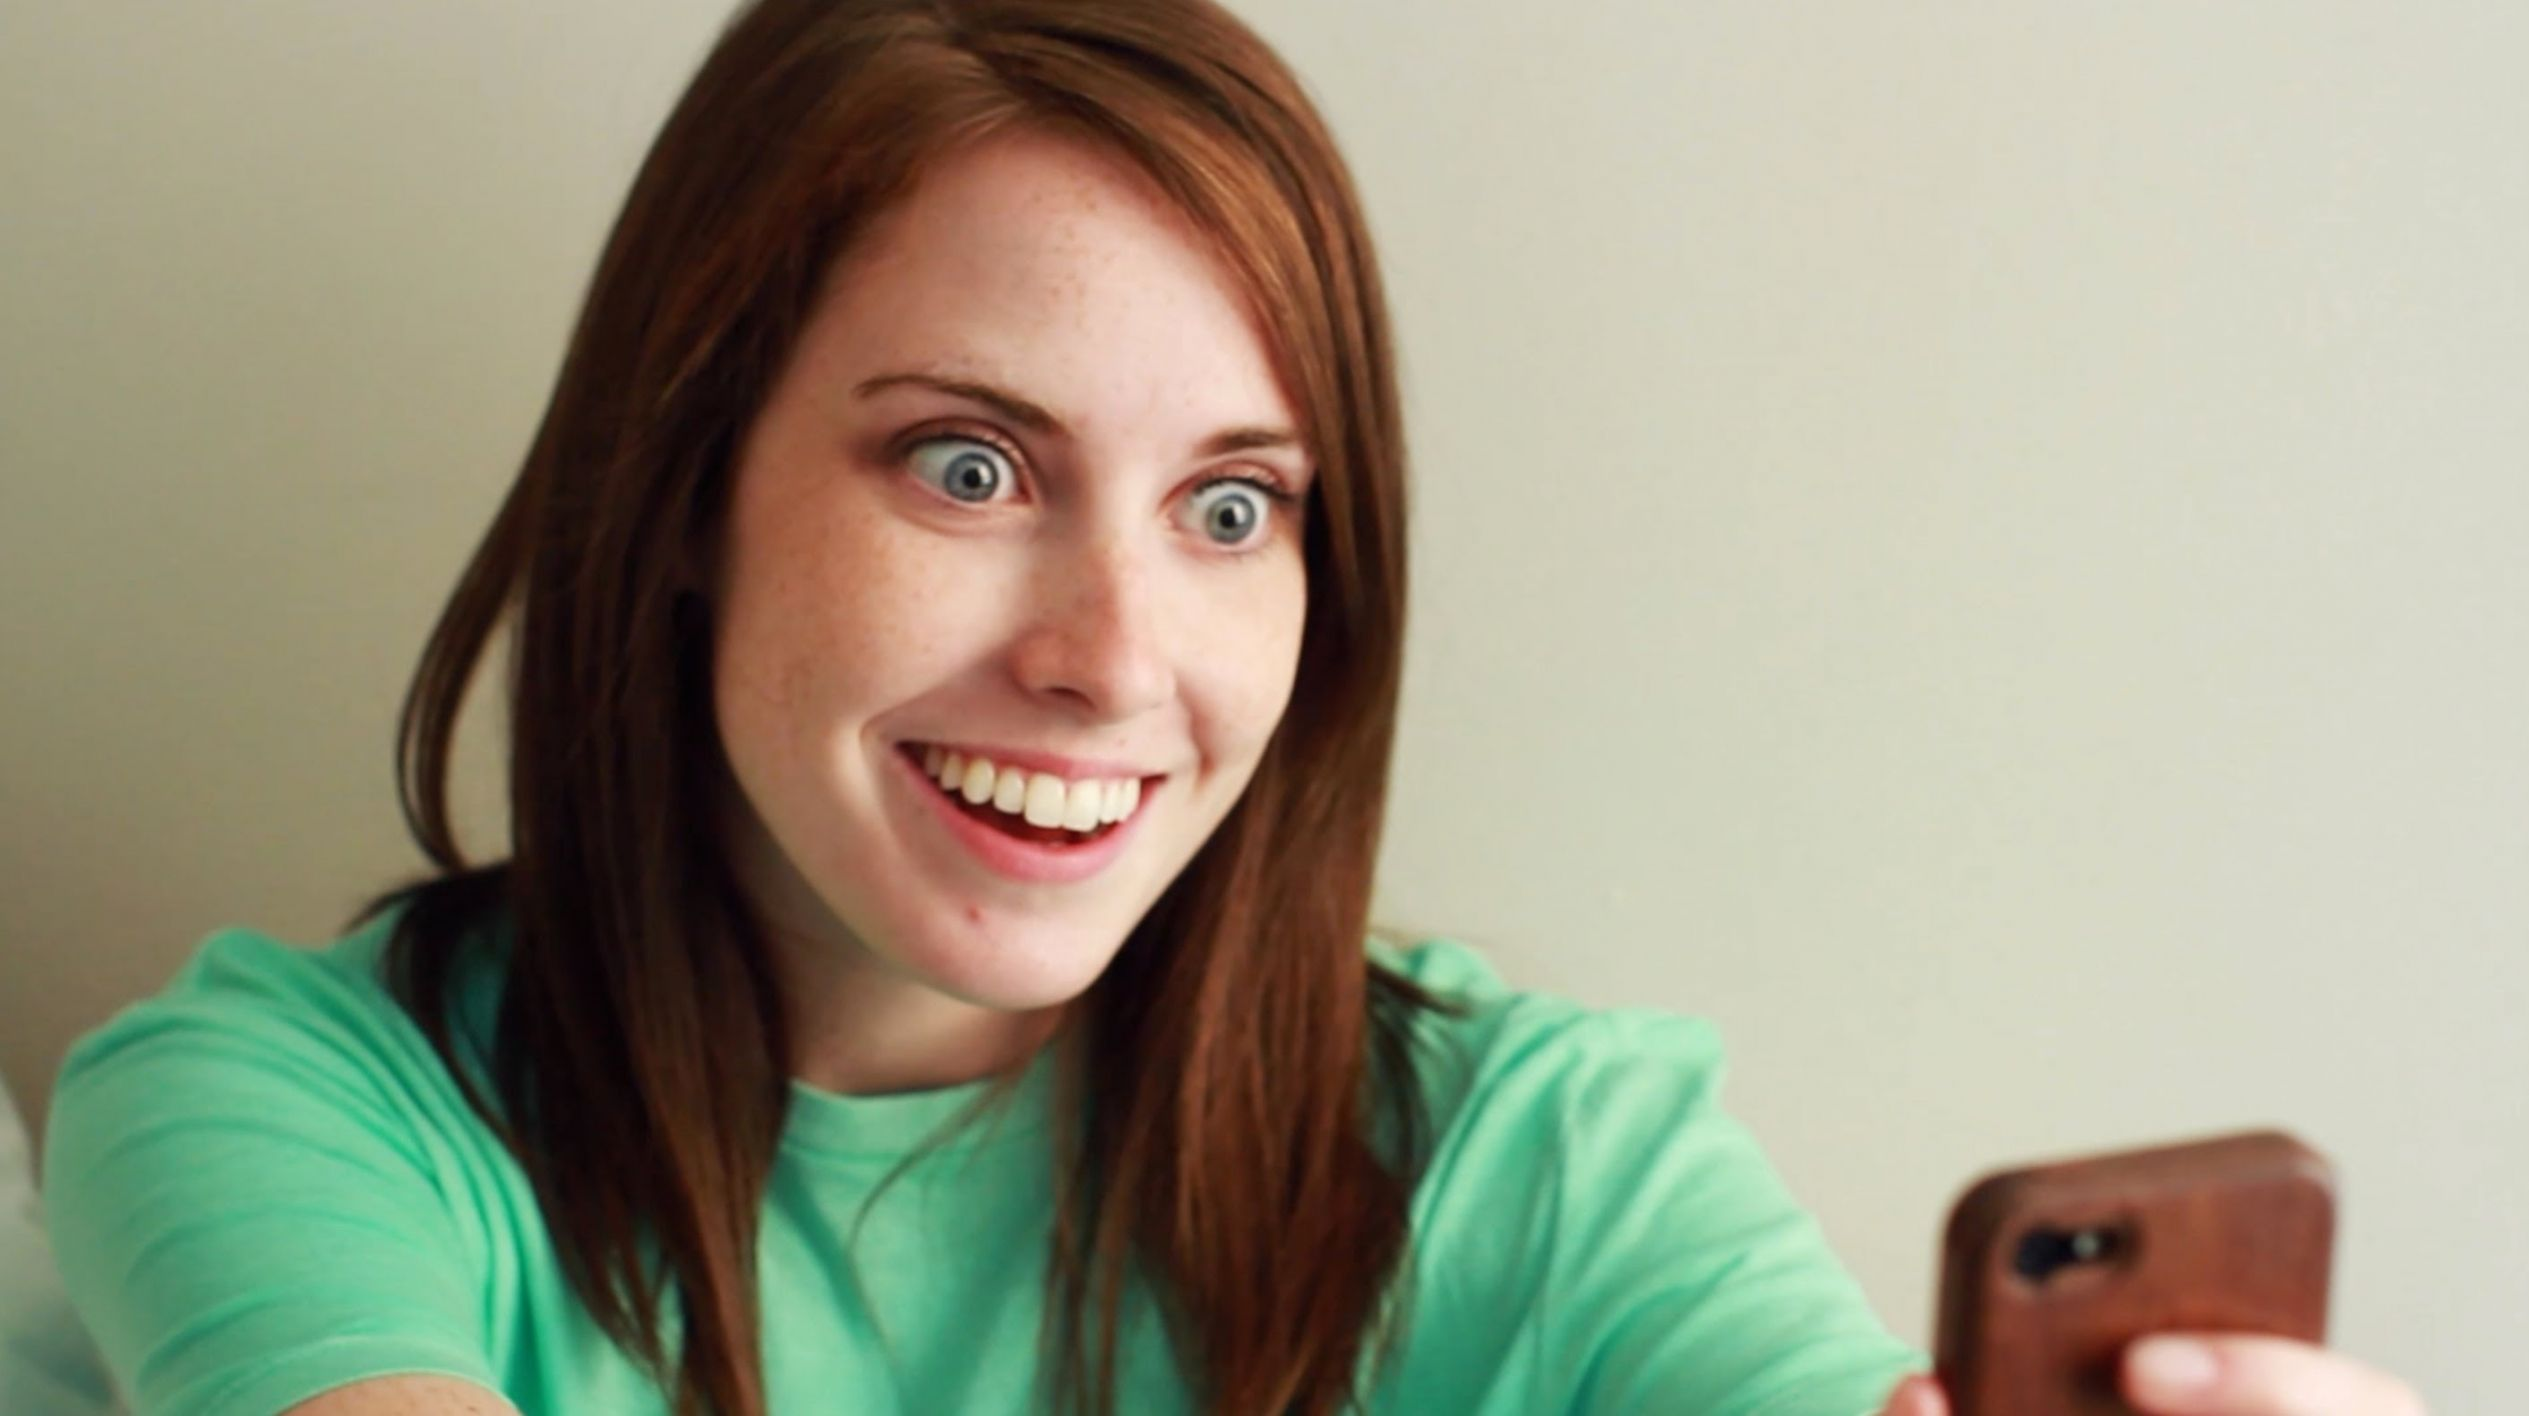 wj8x2 overly attached girlfriend blank template imgflip,Overly Attached Girlfriend Meme Generator